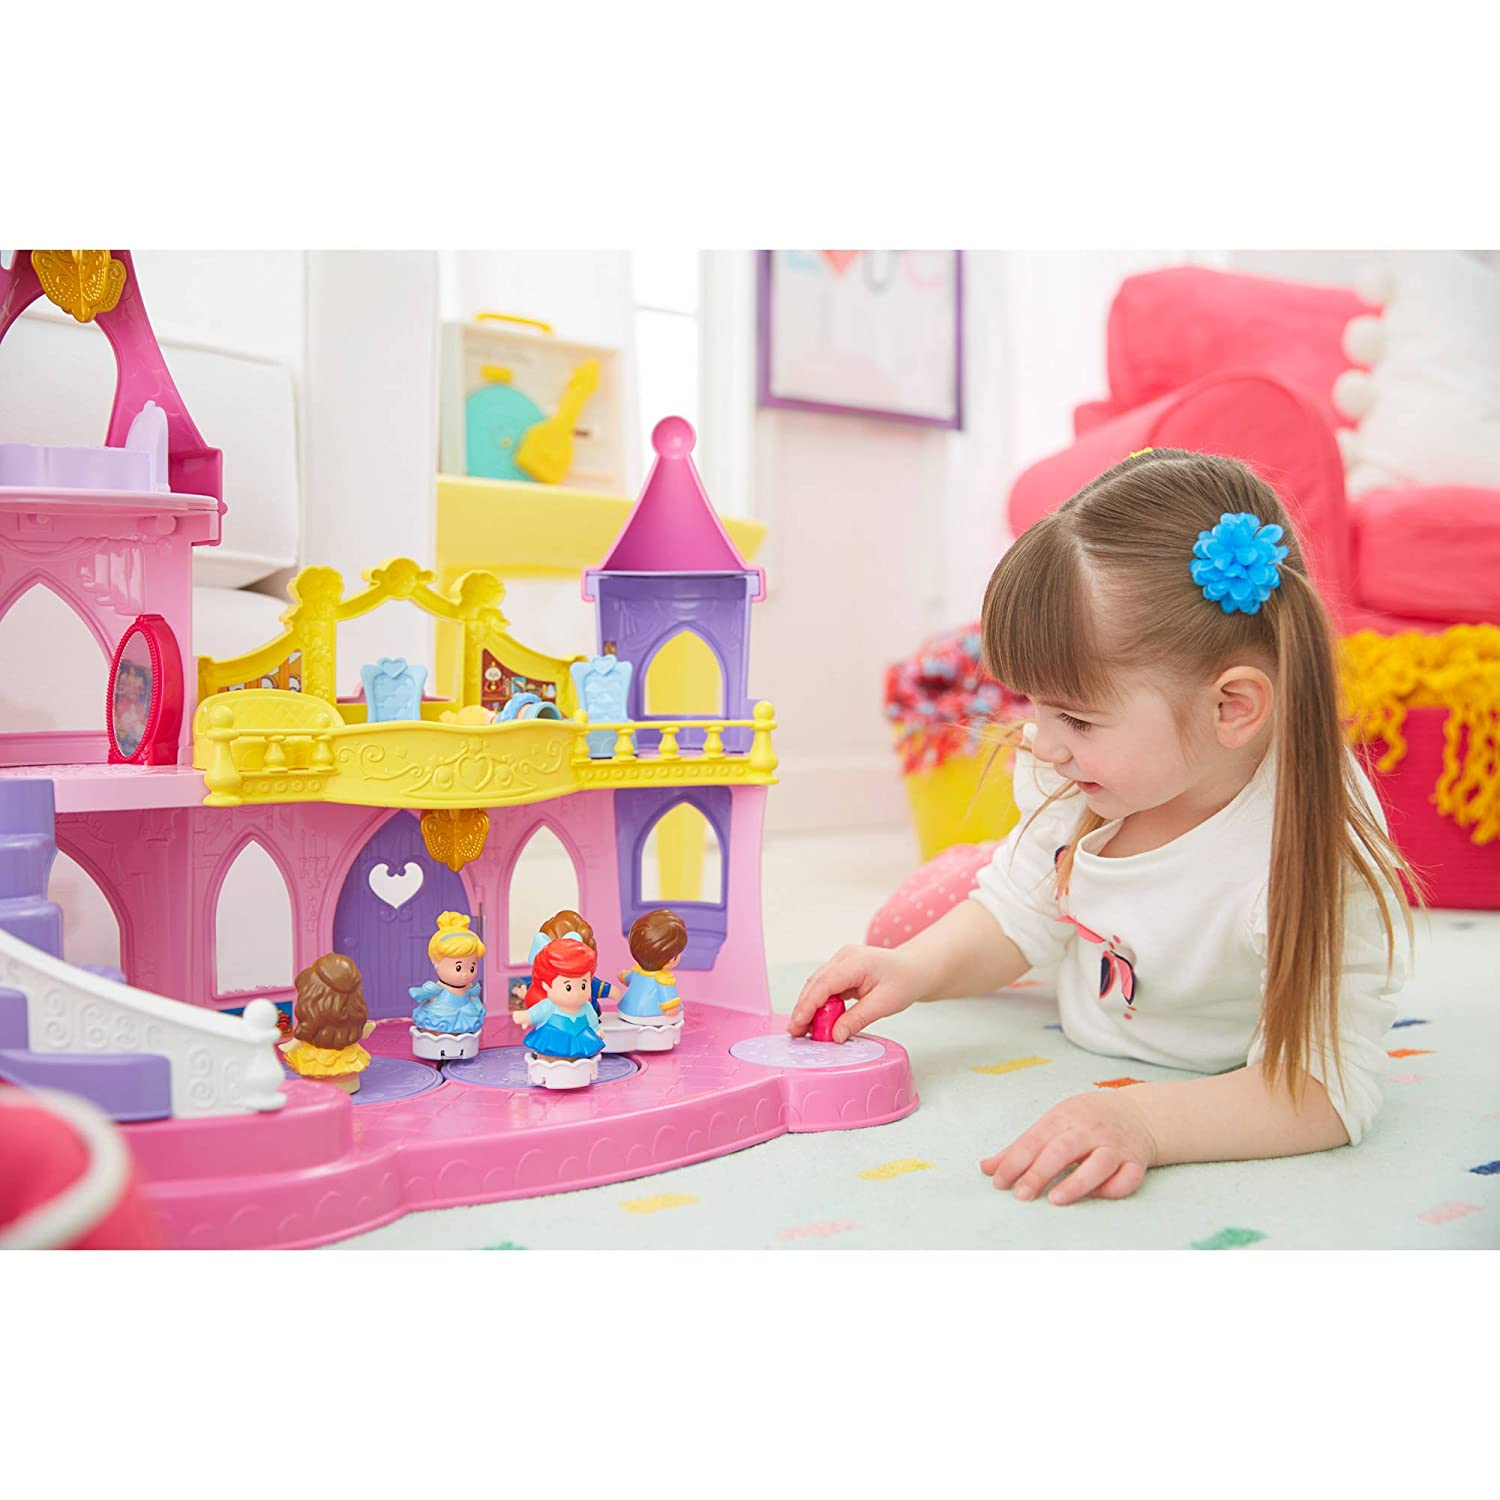 Top Christmas Gifts for 2 Year Old Girls